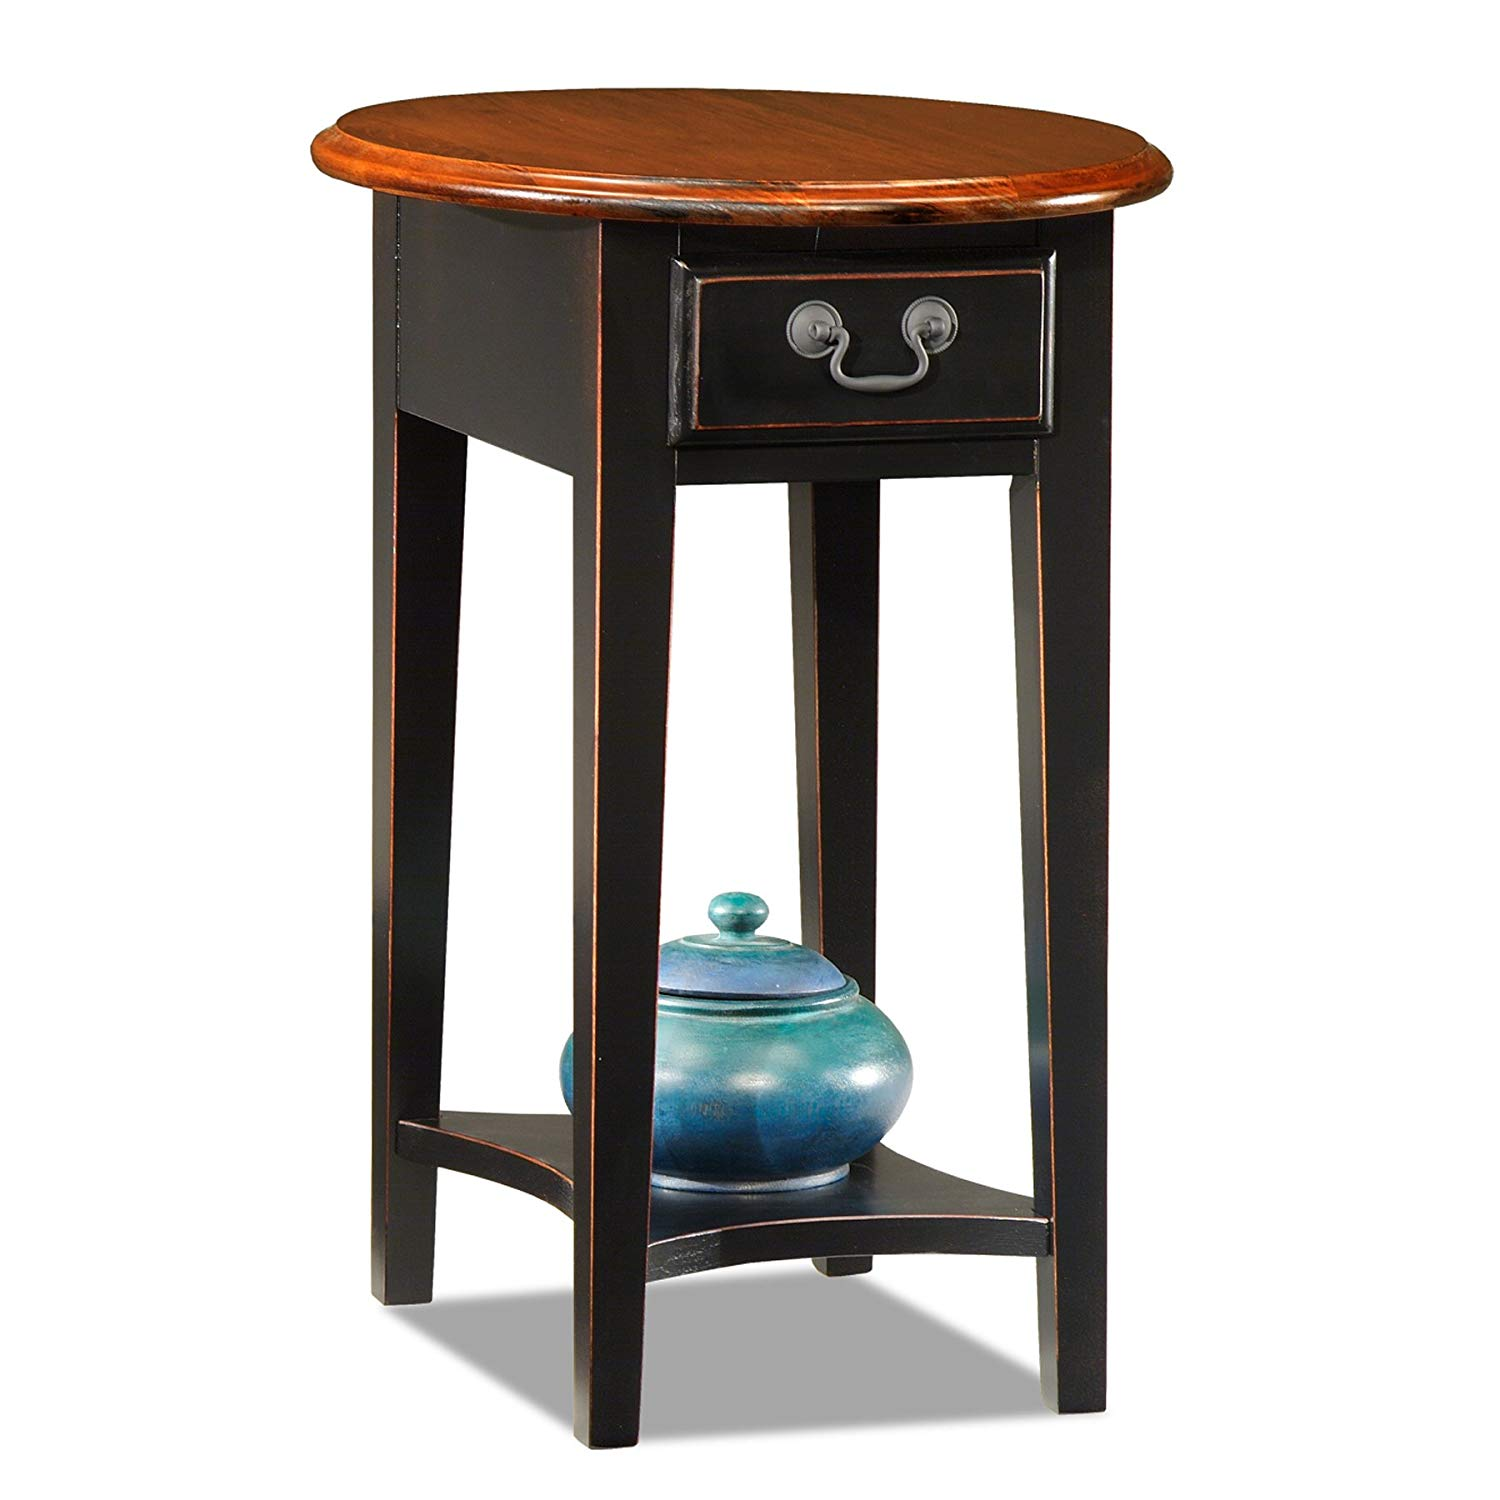 leick oval end table slate black kitchen dining corner accent lucite furniture pottery barn display coffee contemporary room sets mini lamps hampton bay posada round drop leaf set